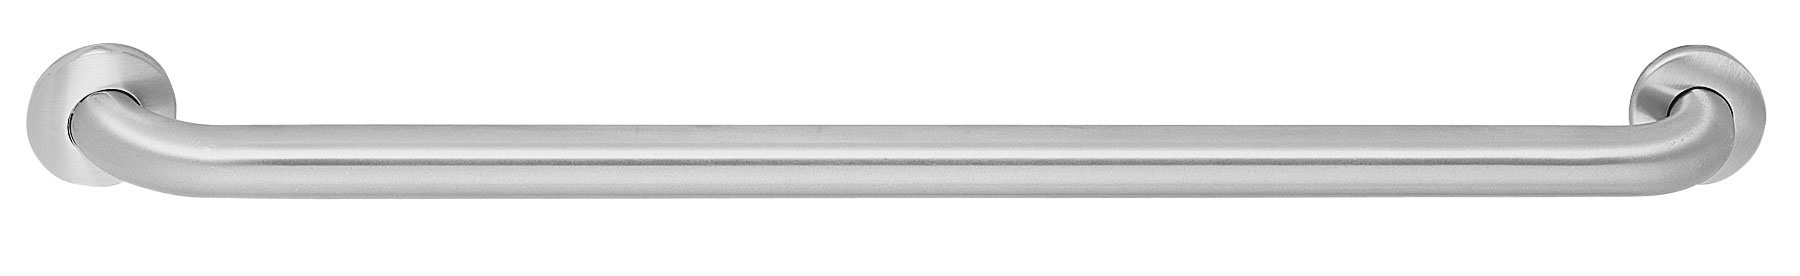 Bradley Washroom Grab Bars are designed for safety and security for the physically disabled and handicap. The 812 Series bathroom handles are made with 18-gauge stainless steel, seamless construction with concealed mounting.